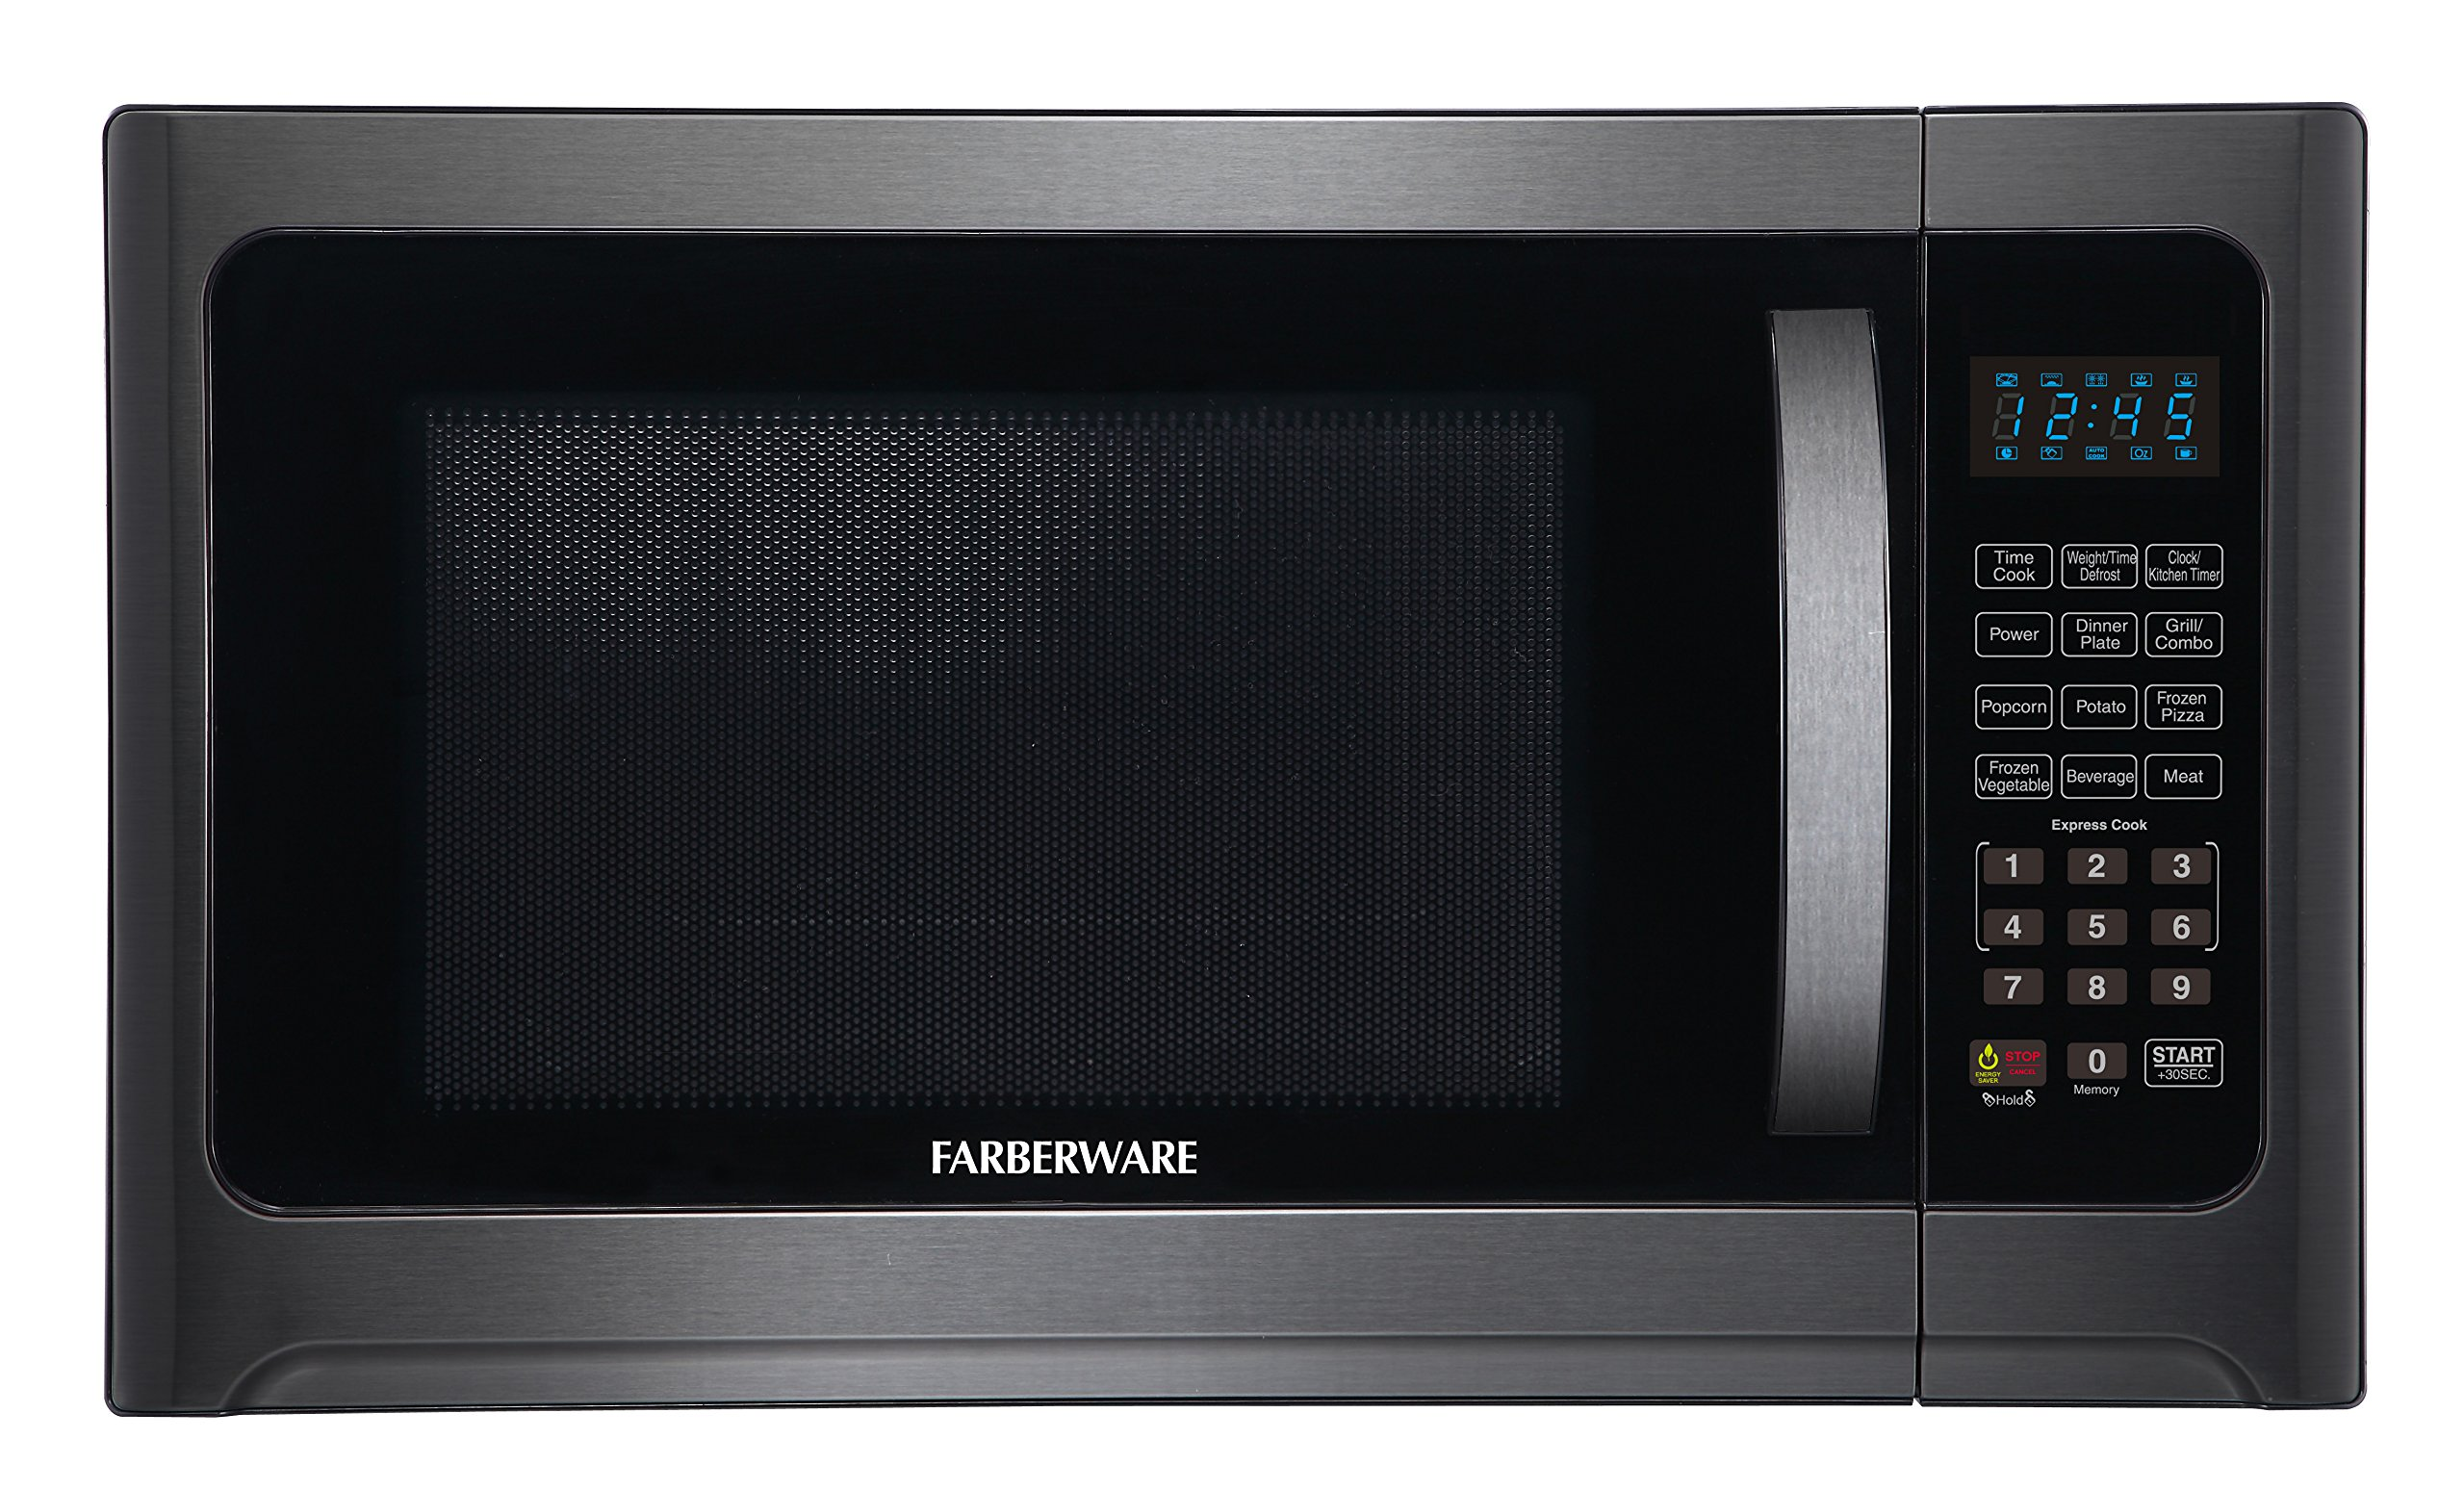 Farberware Black FMO12AHTBSG 1.2 Cu. Ft. 1100-Watt Microwave Oven with Grill, ECO Mode and Blue LED Lighting, Black Stainless Steel by Farberware